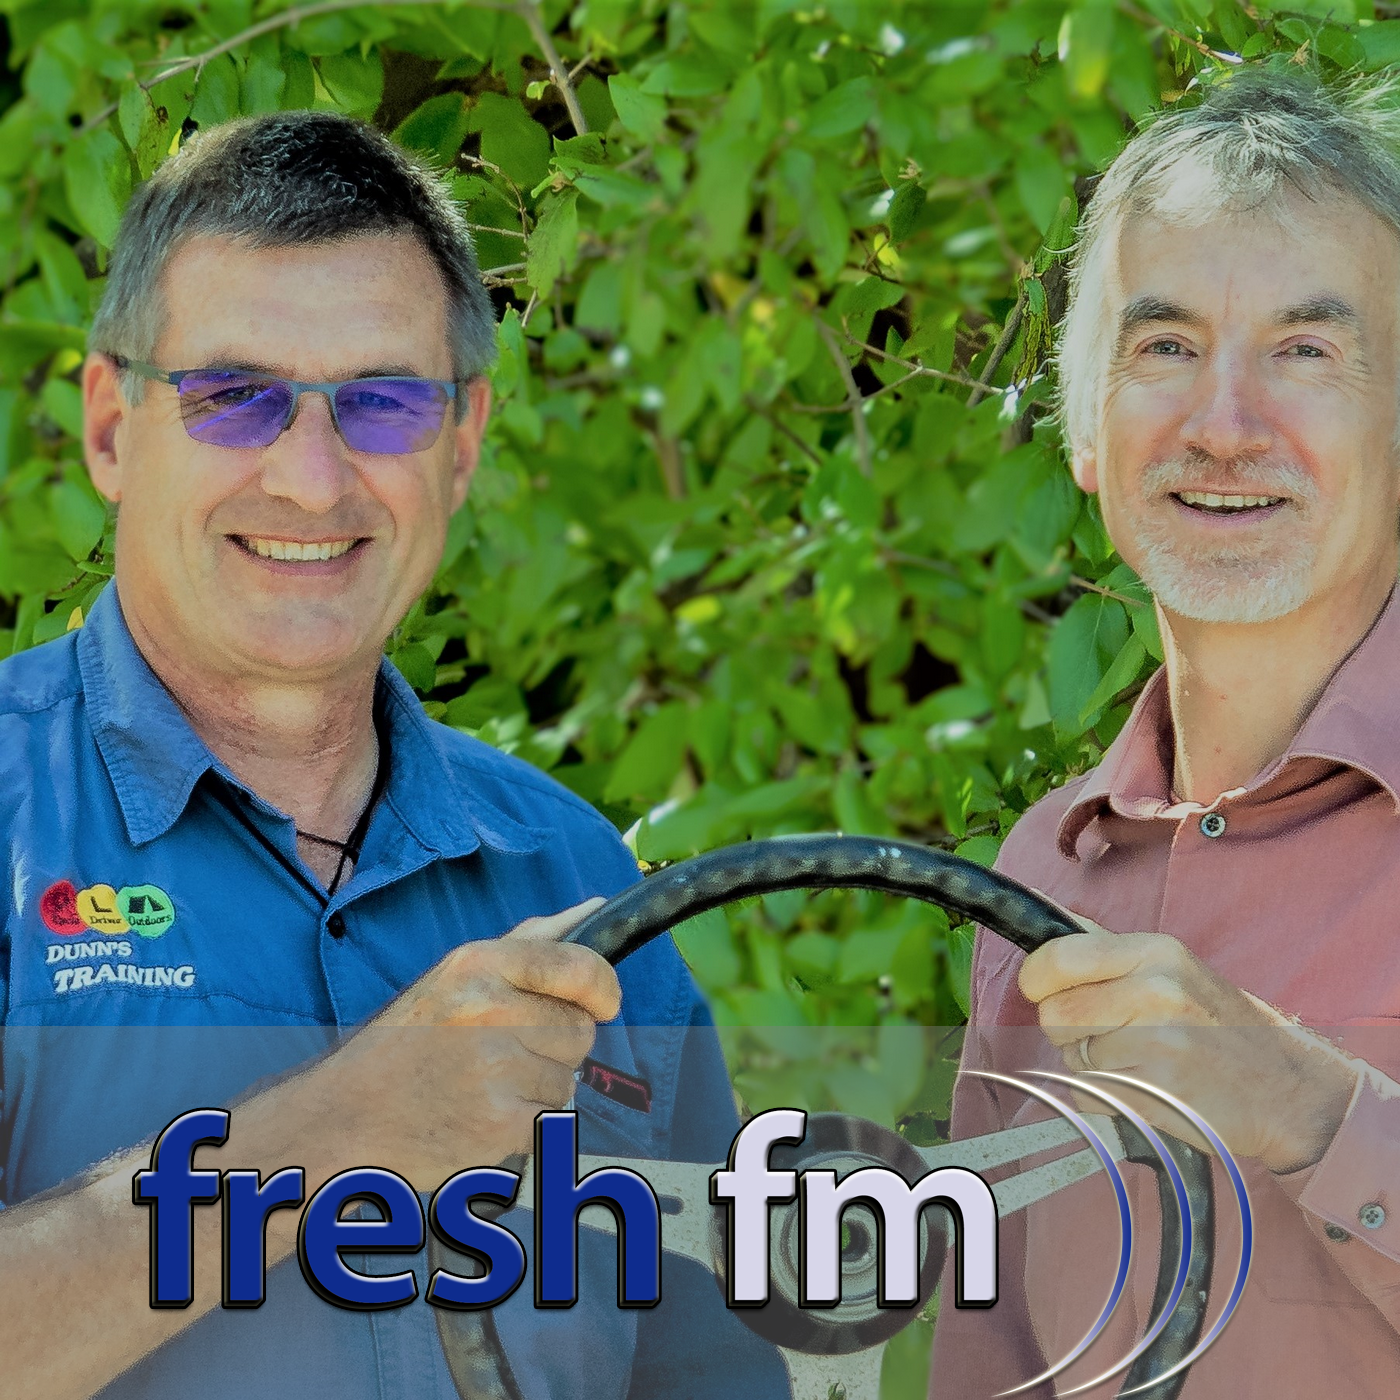 https://cdn.accessradio.org/StationFolder/freshfm/Images/Drive-Alive- Stephen-and-Gary.png